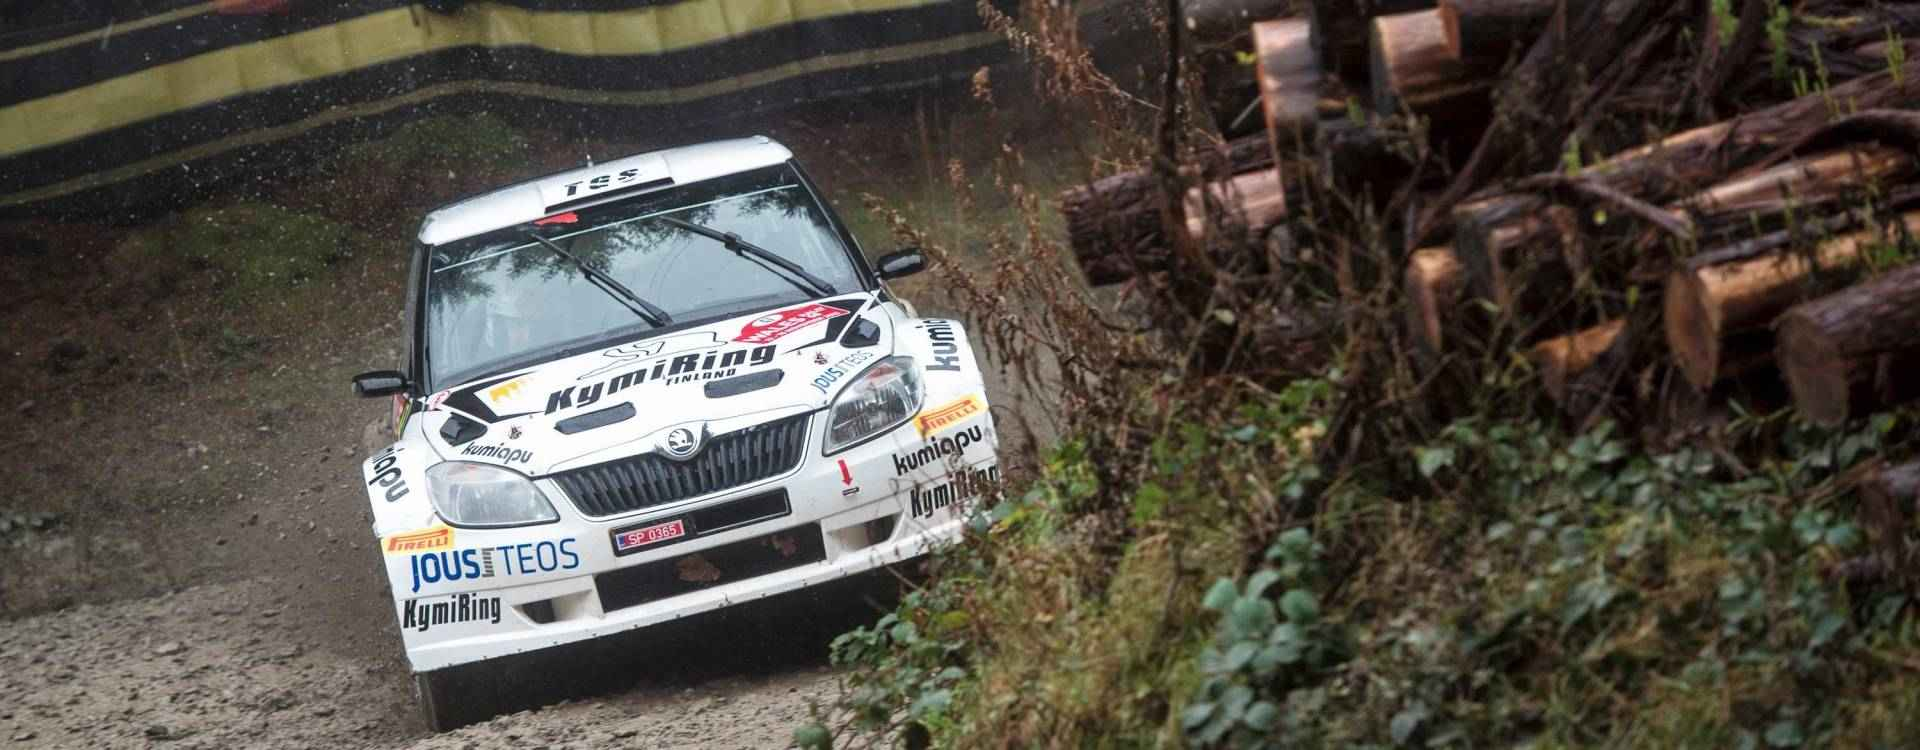 Wales Rally GB: First win for Suninen